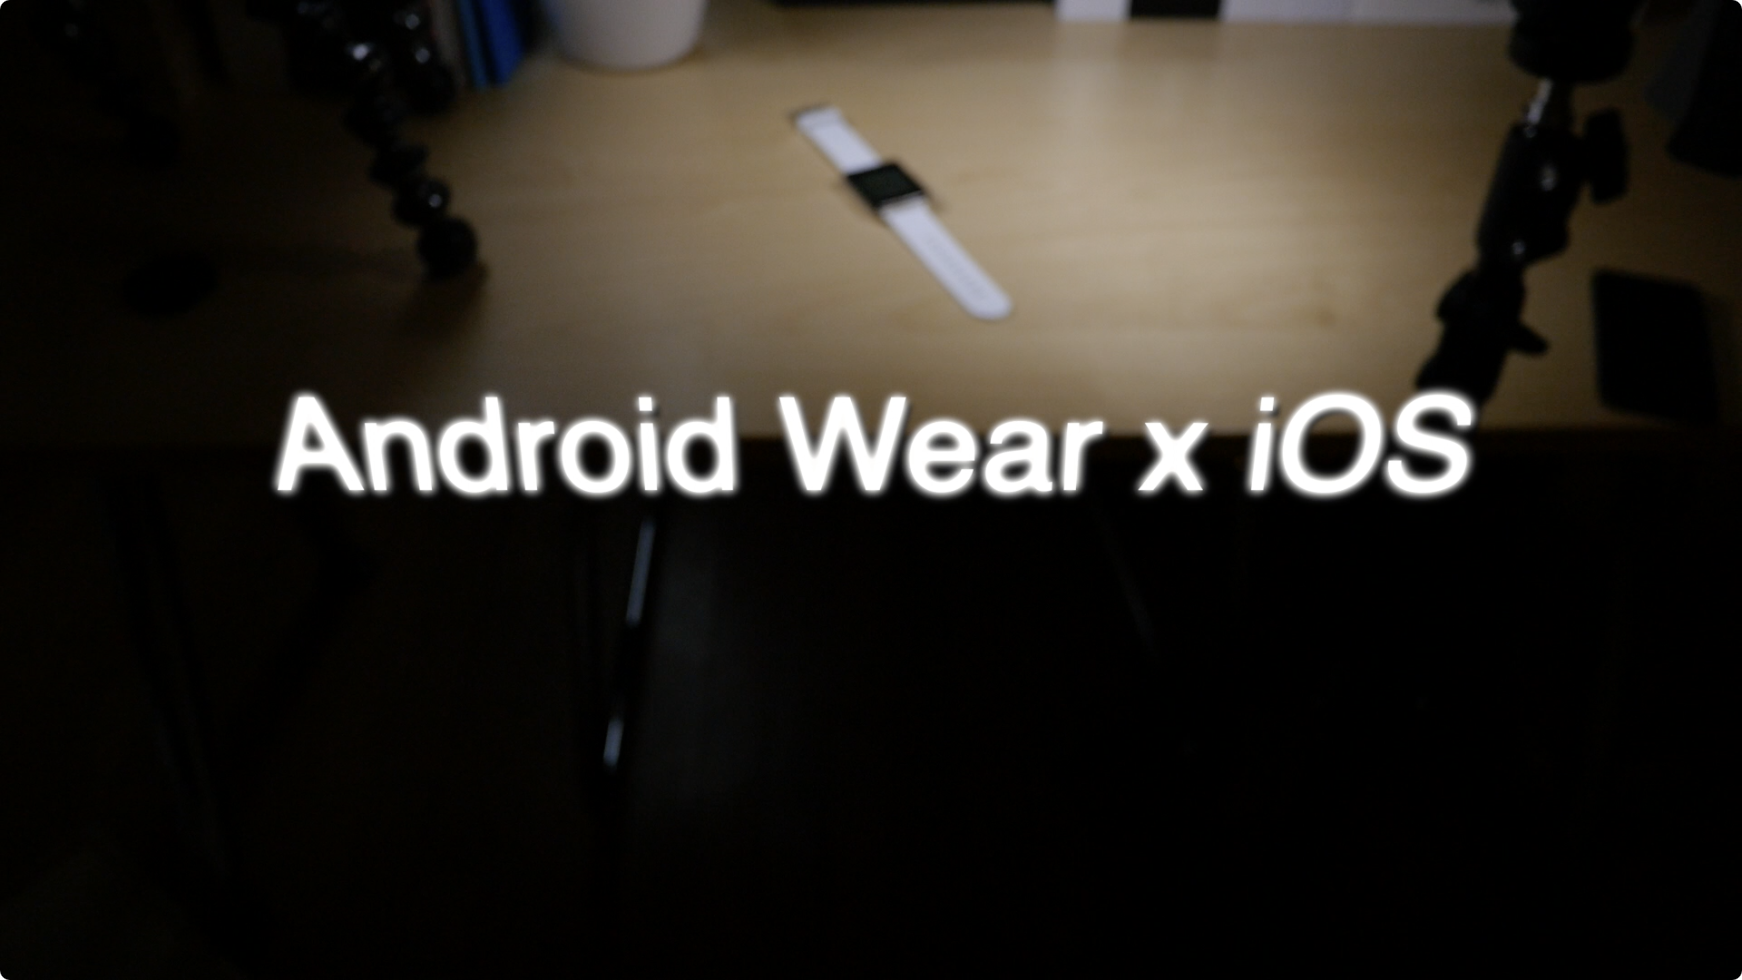 Android Wear iOS  Notifications